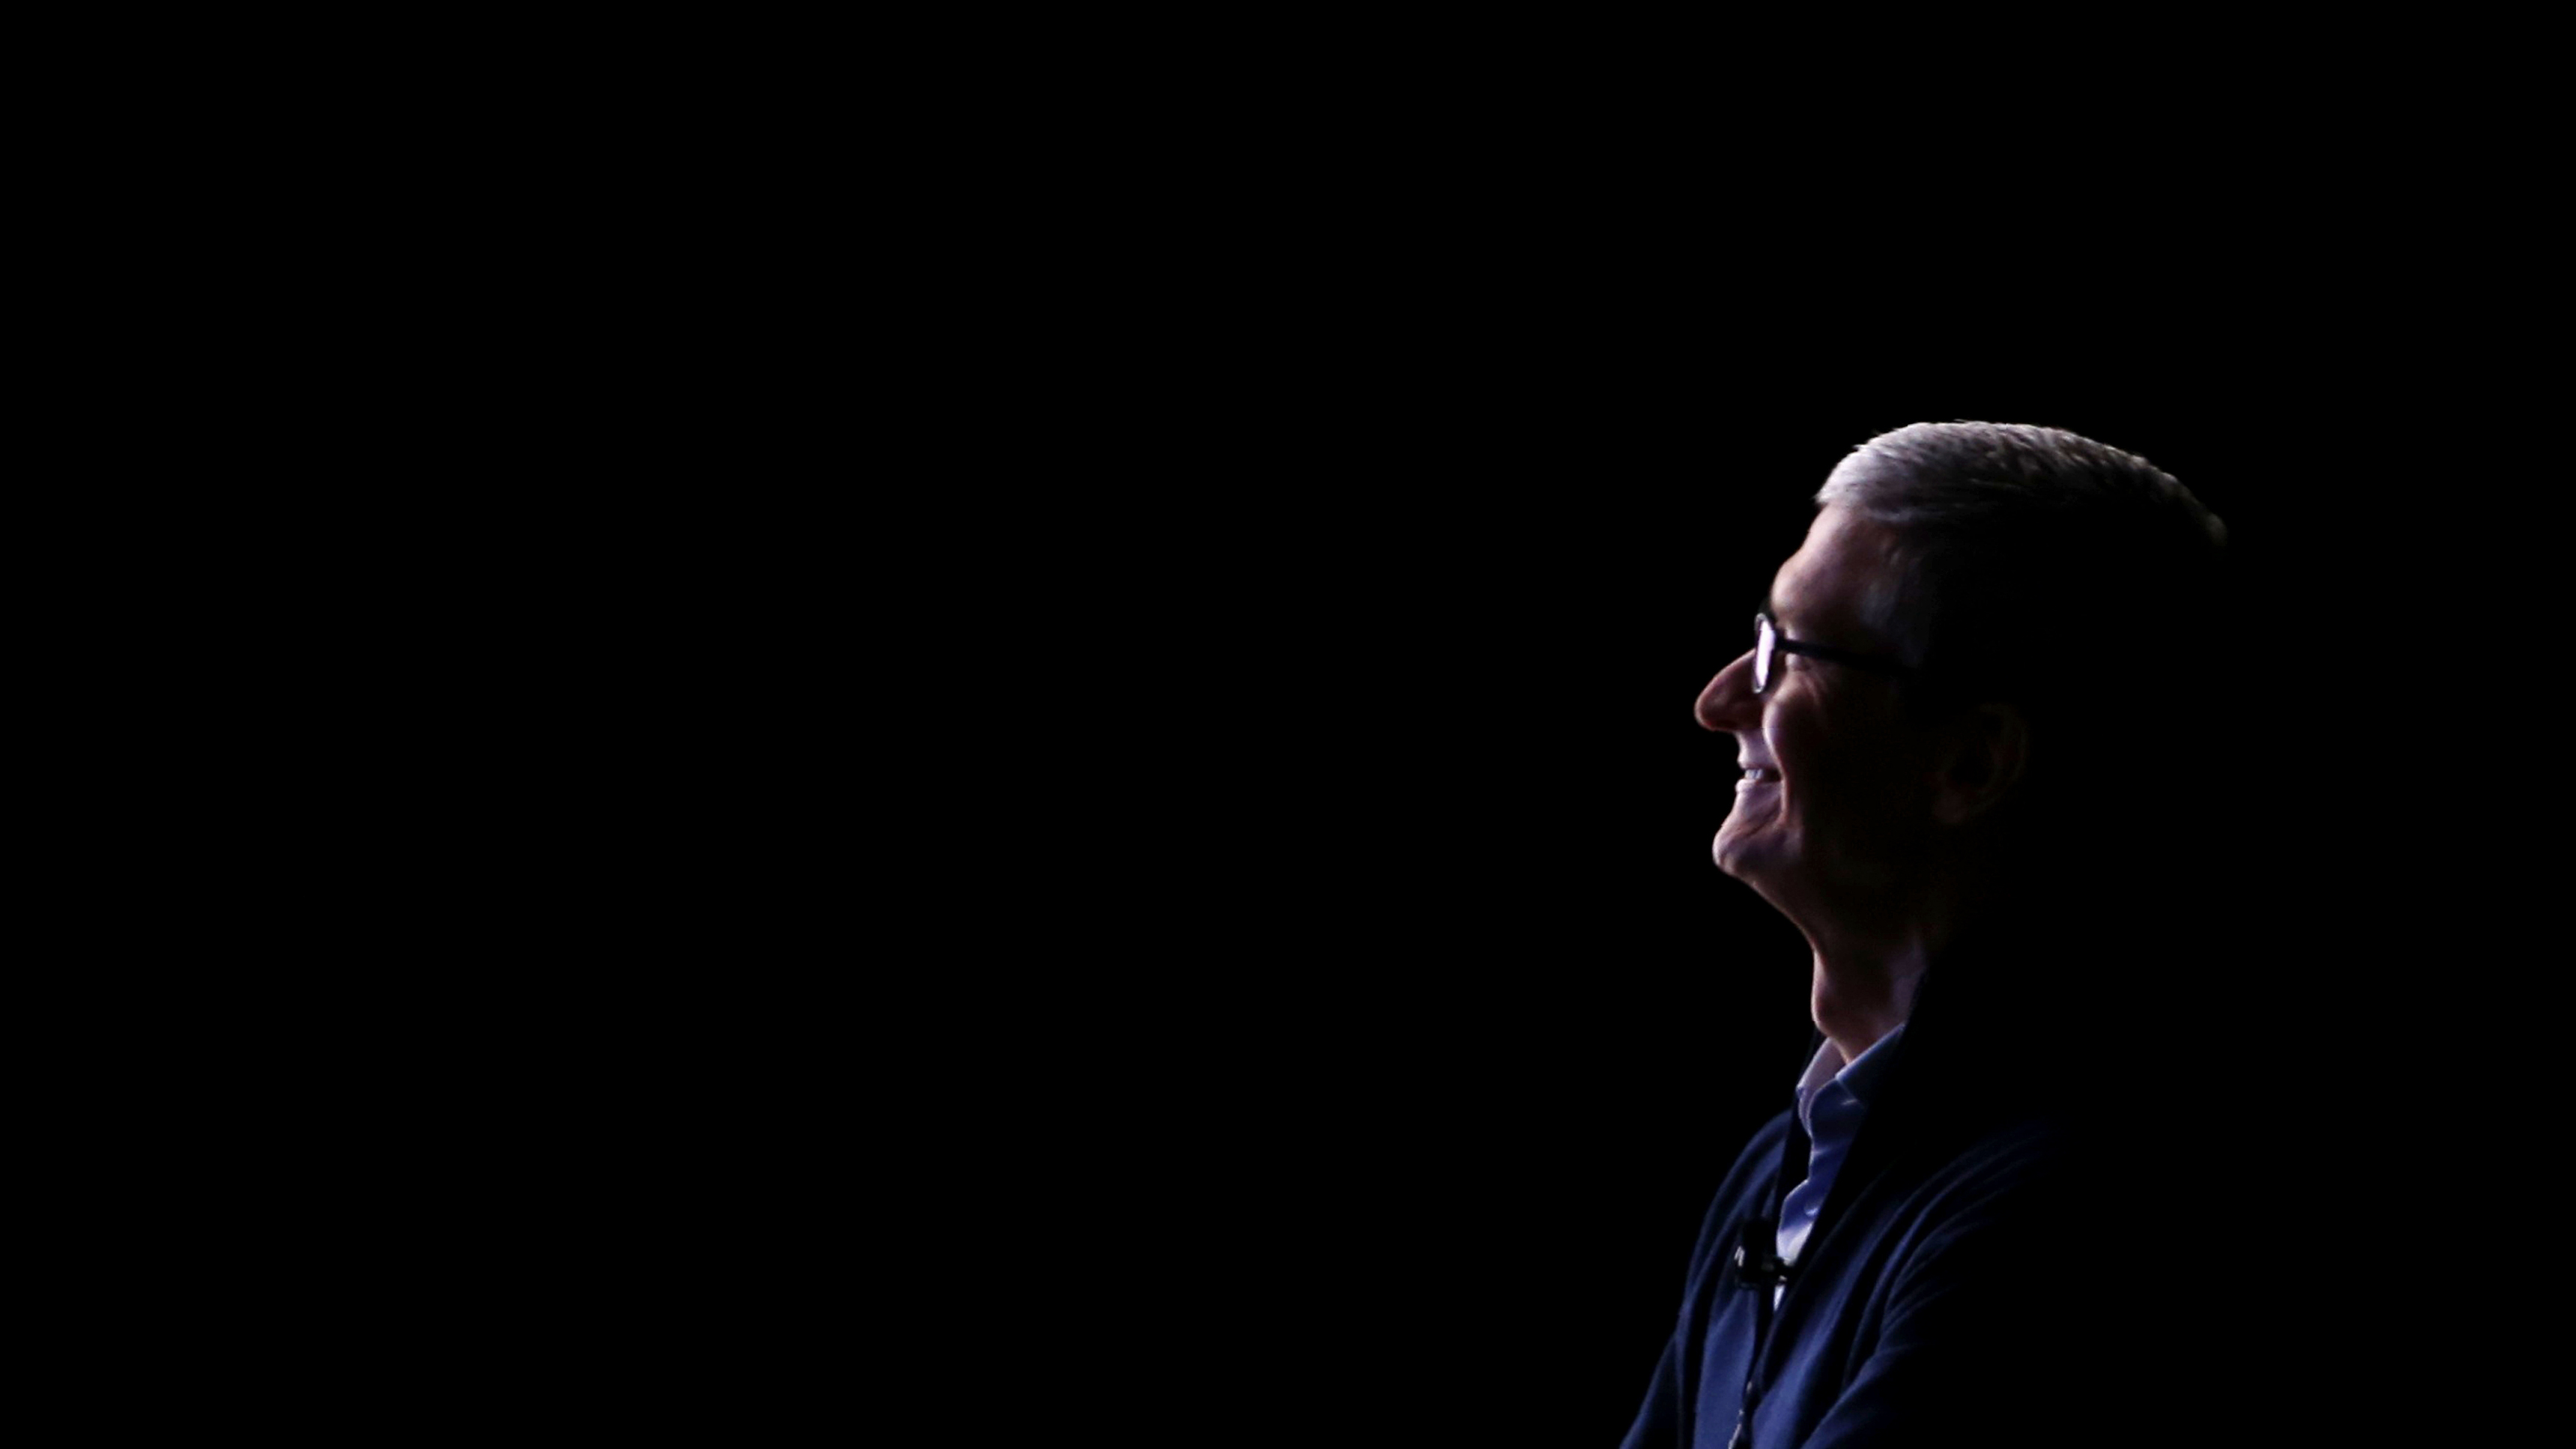 Apple CEO Tim Cook looks on during a product launch event in Cupertino, California, U.S. September 12, 2017. REUTERS/Stephen Lam - HP1ED9C1JZBE4